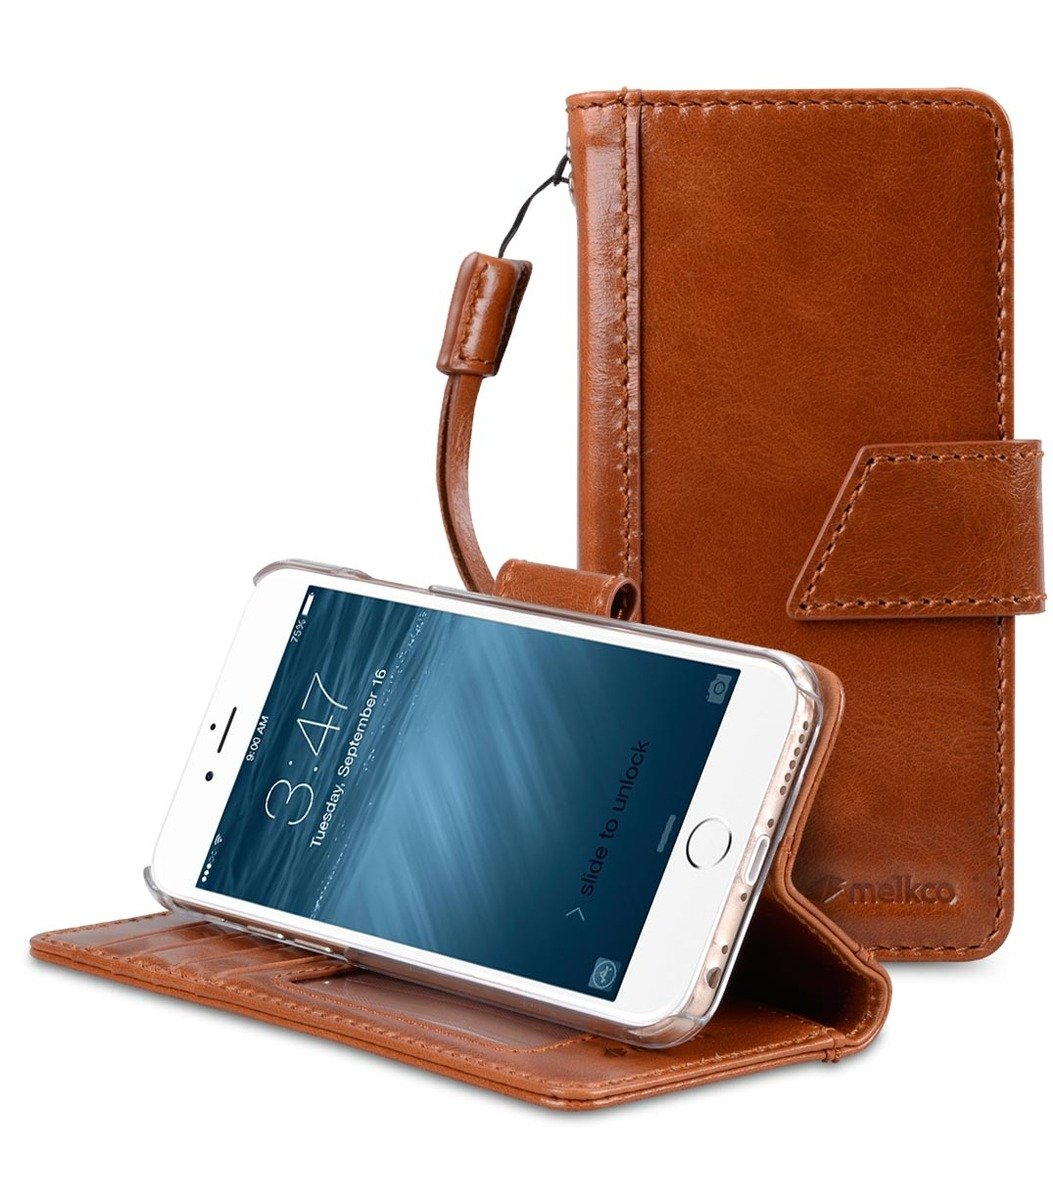 Apple iPhone 8 / 7 Kingston Style Premium Italian Wax Leather Case (Brown)